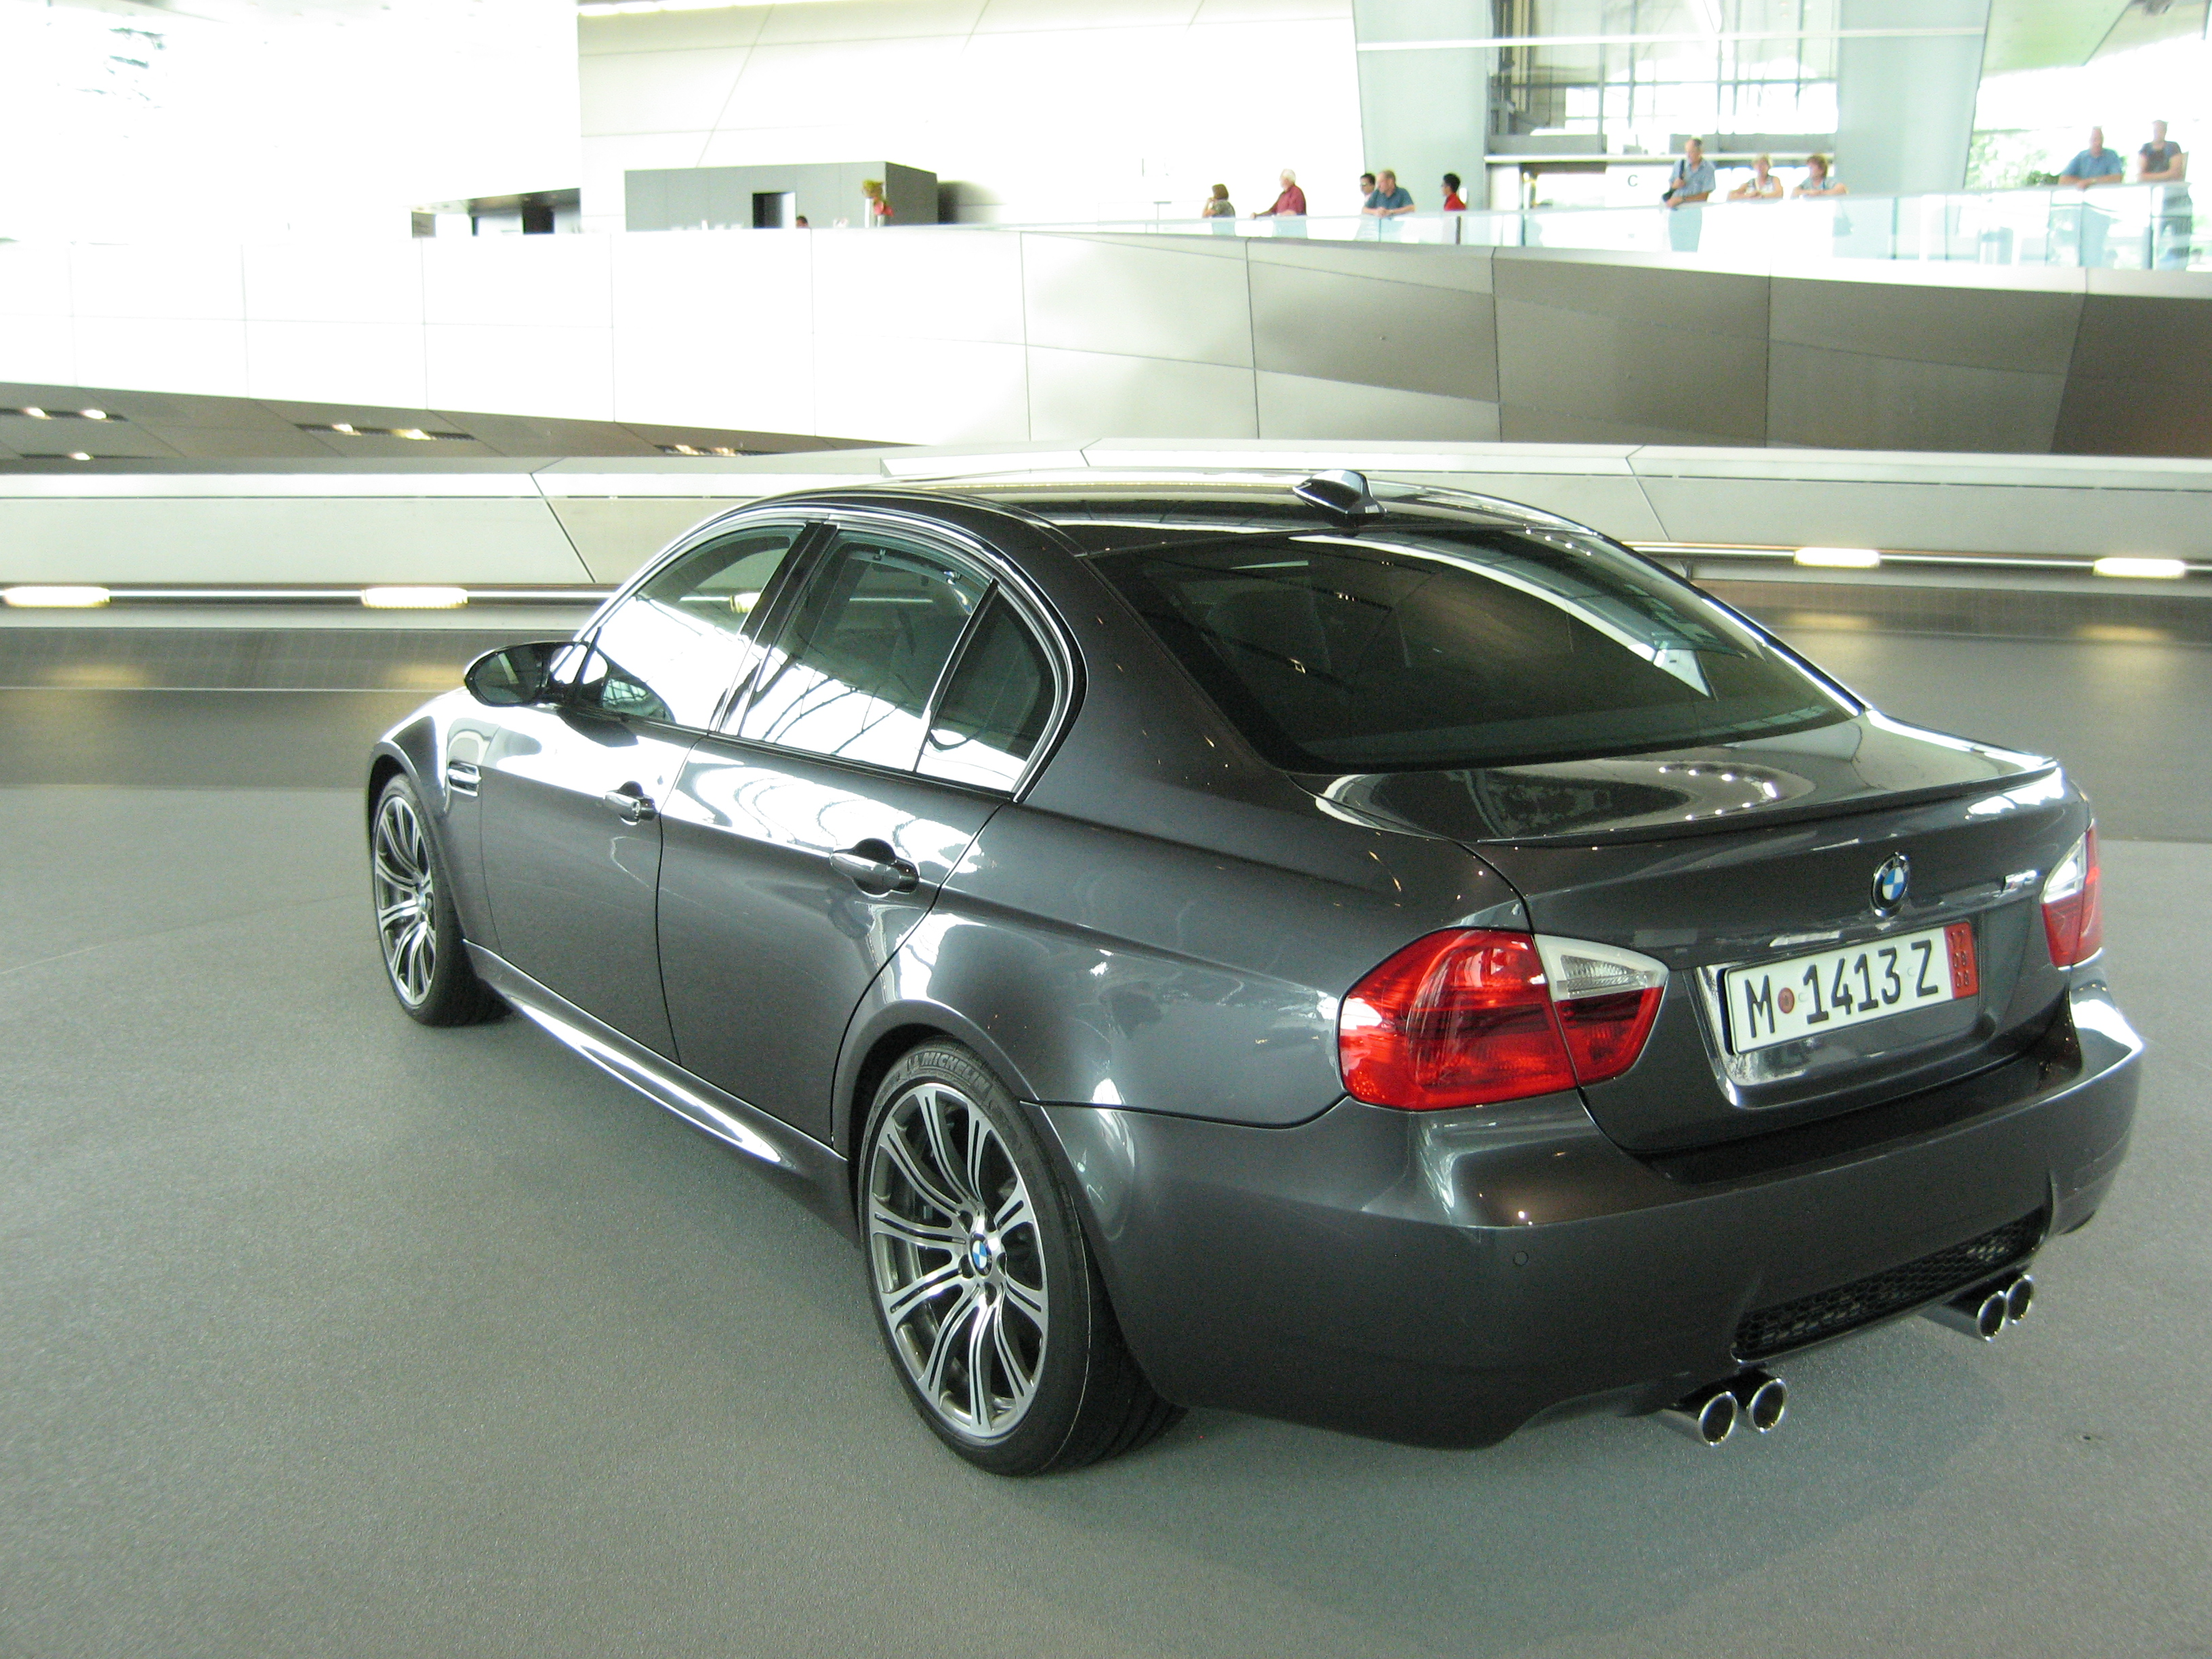 file silver bmw m3 e90 wikimedia commons. Black Bedroom Furniture Sets. Home Design Ideas